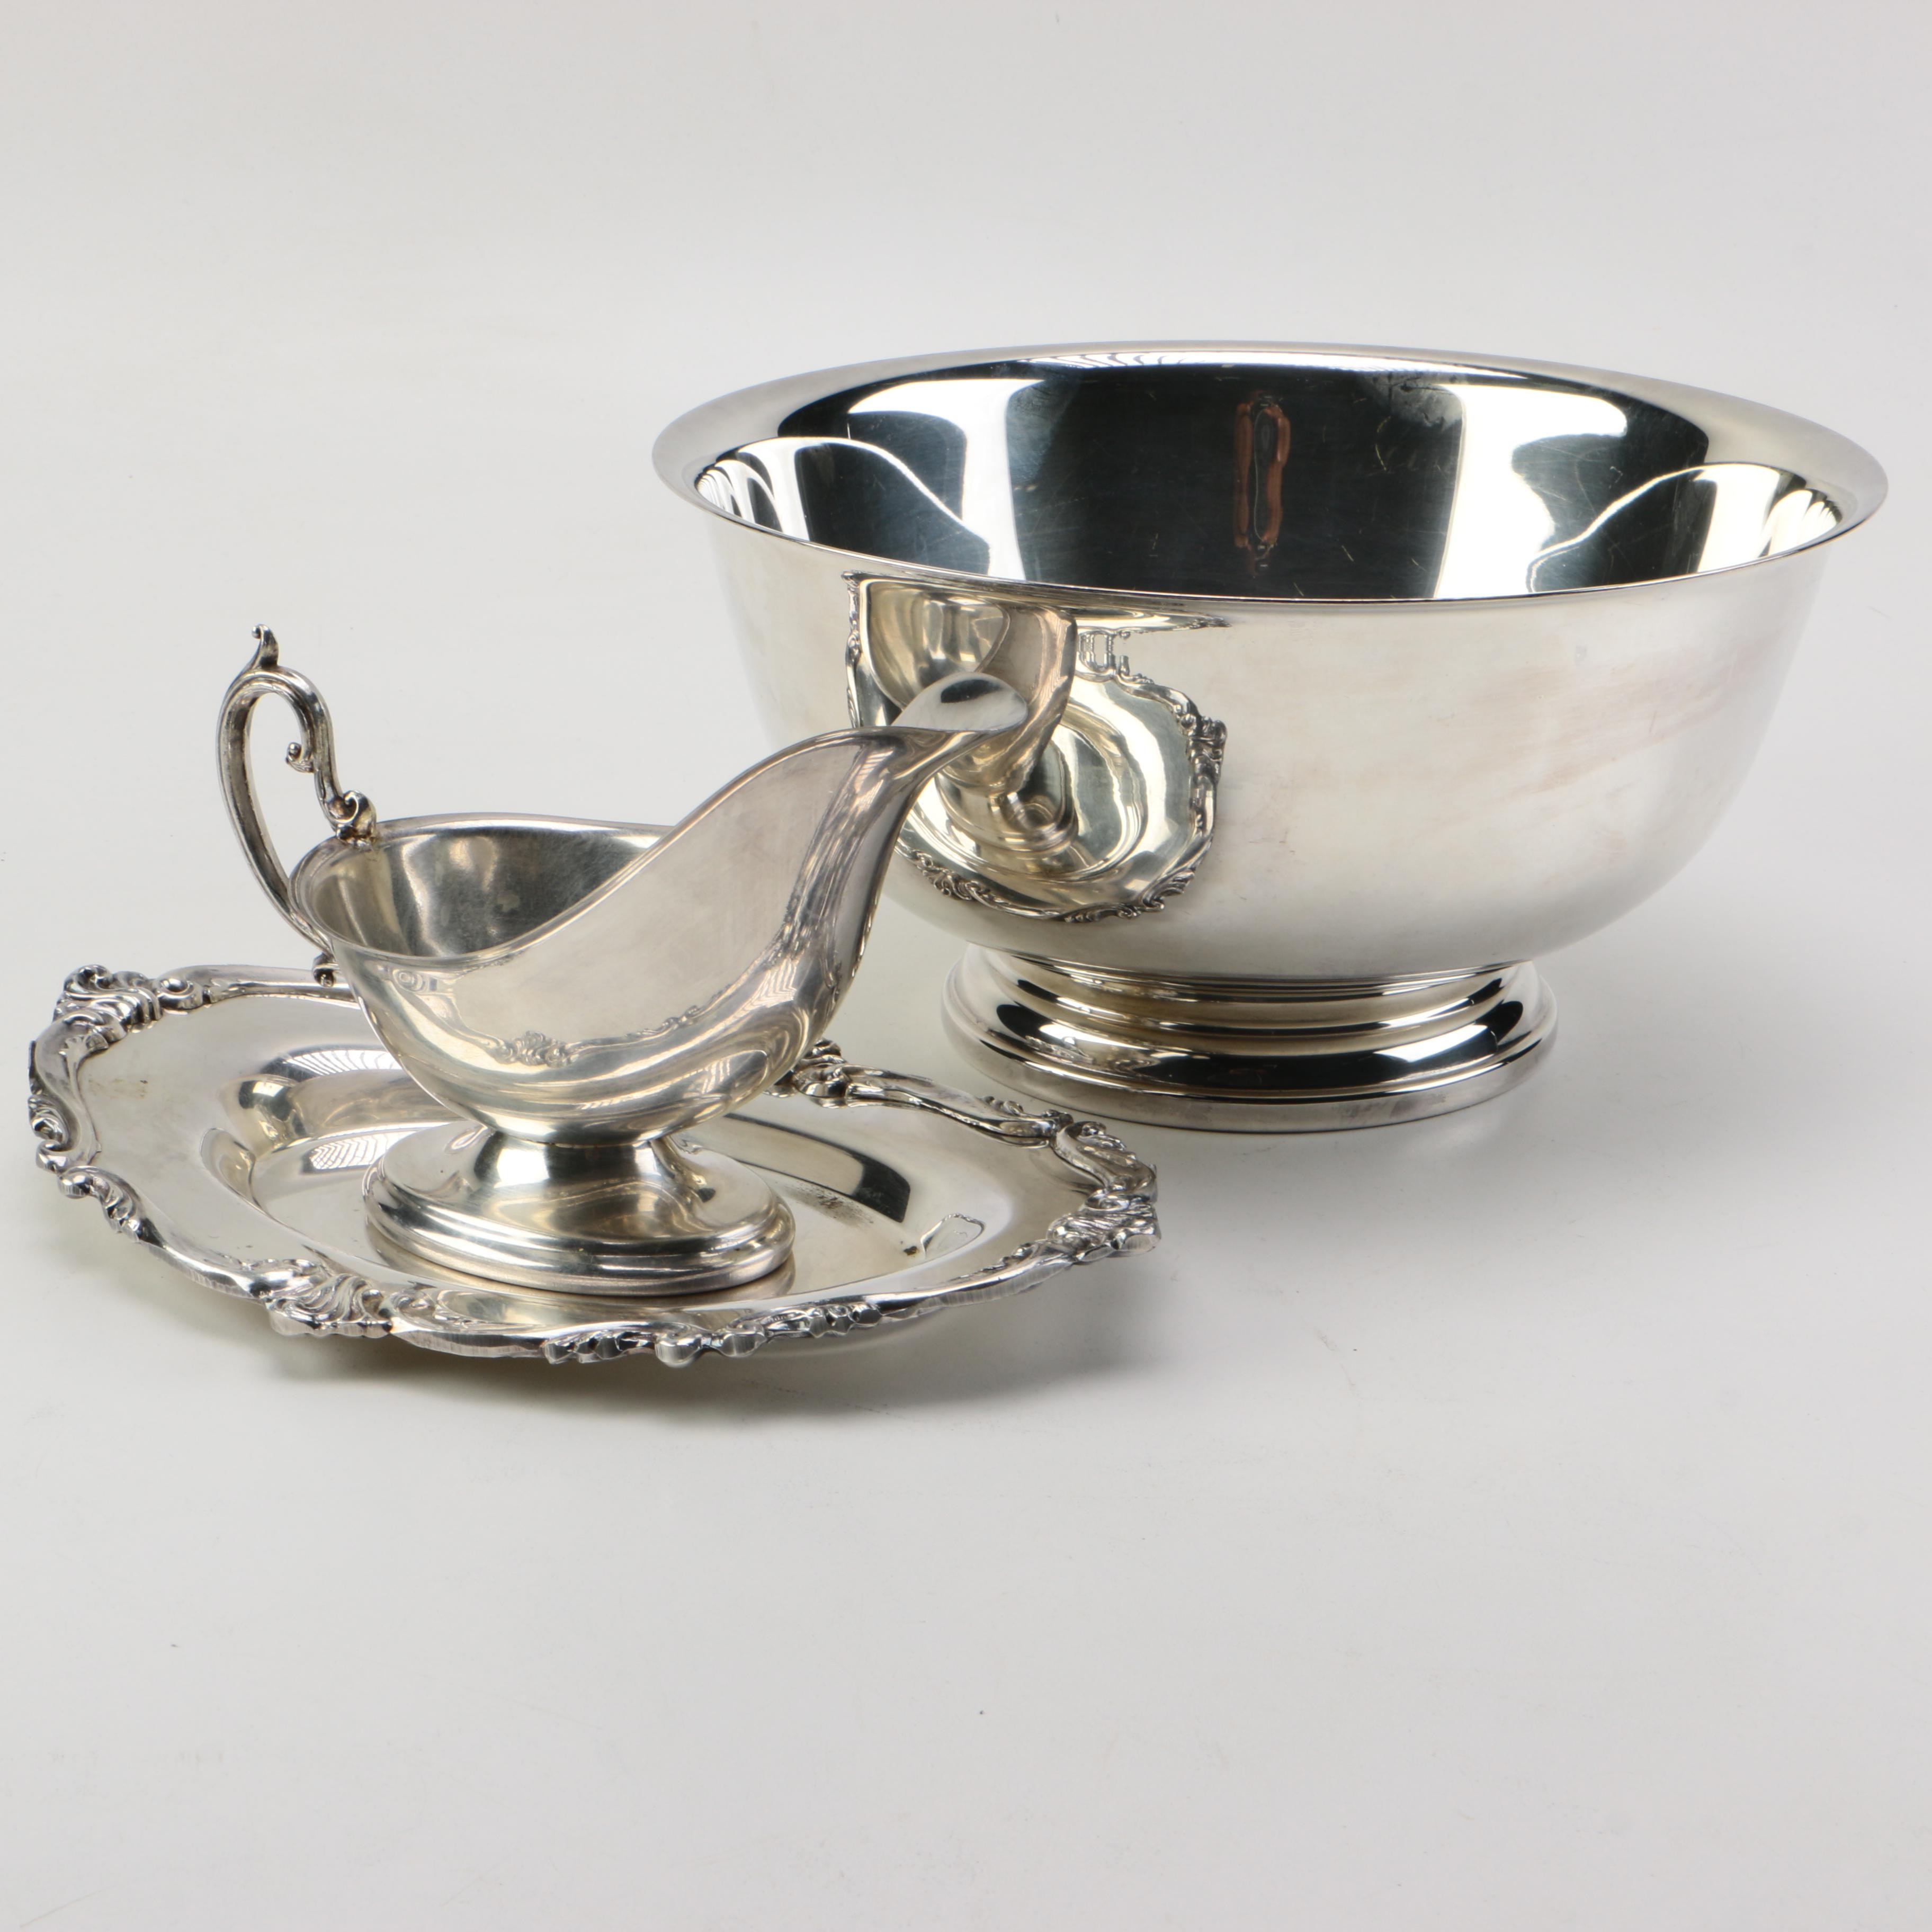 """Gorham """"Paul Revere"""" Silver Plate Bowl and Gravy Boat with Tray"""